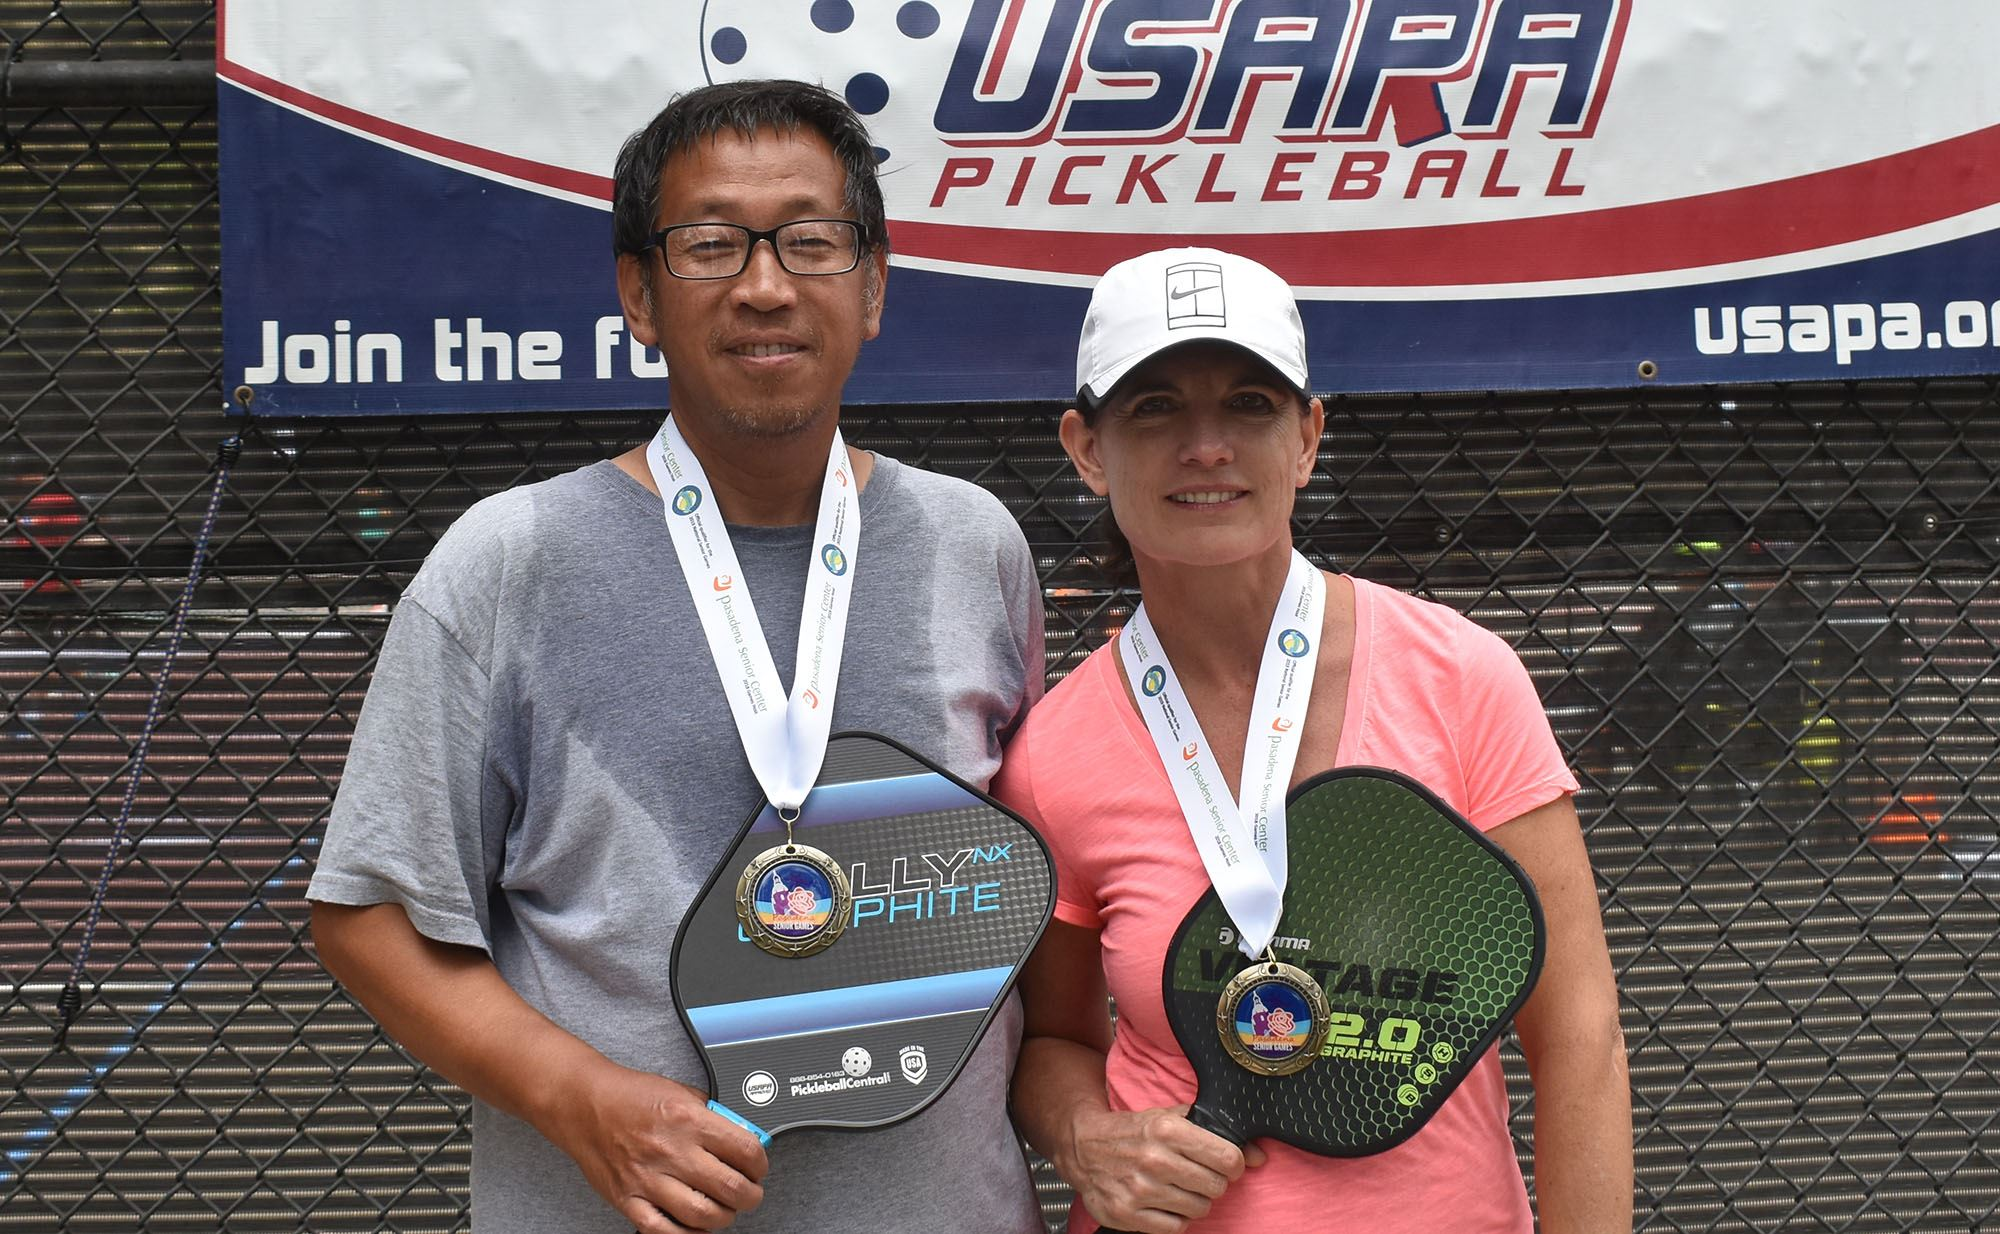 San Gabriel pickleball players win gold at tournament